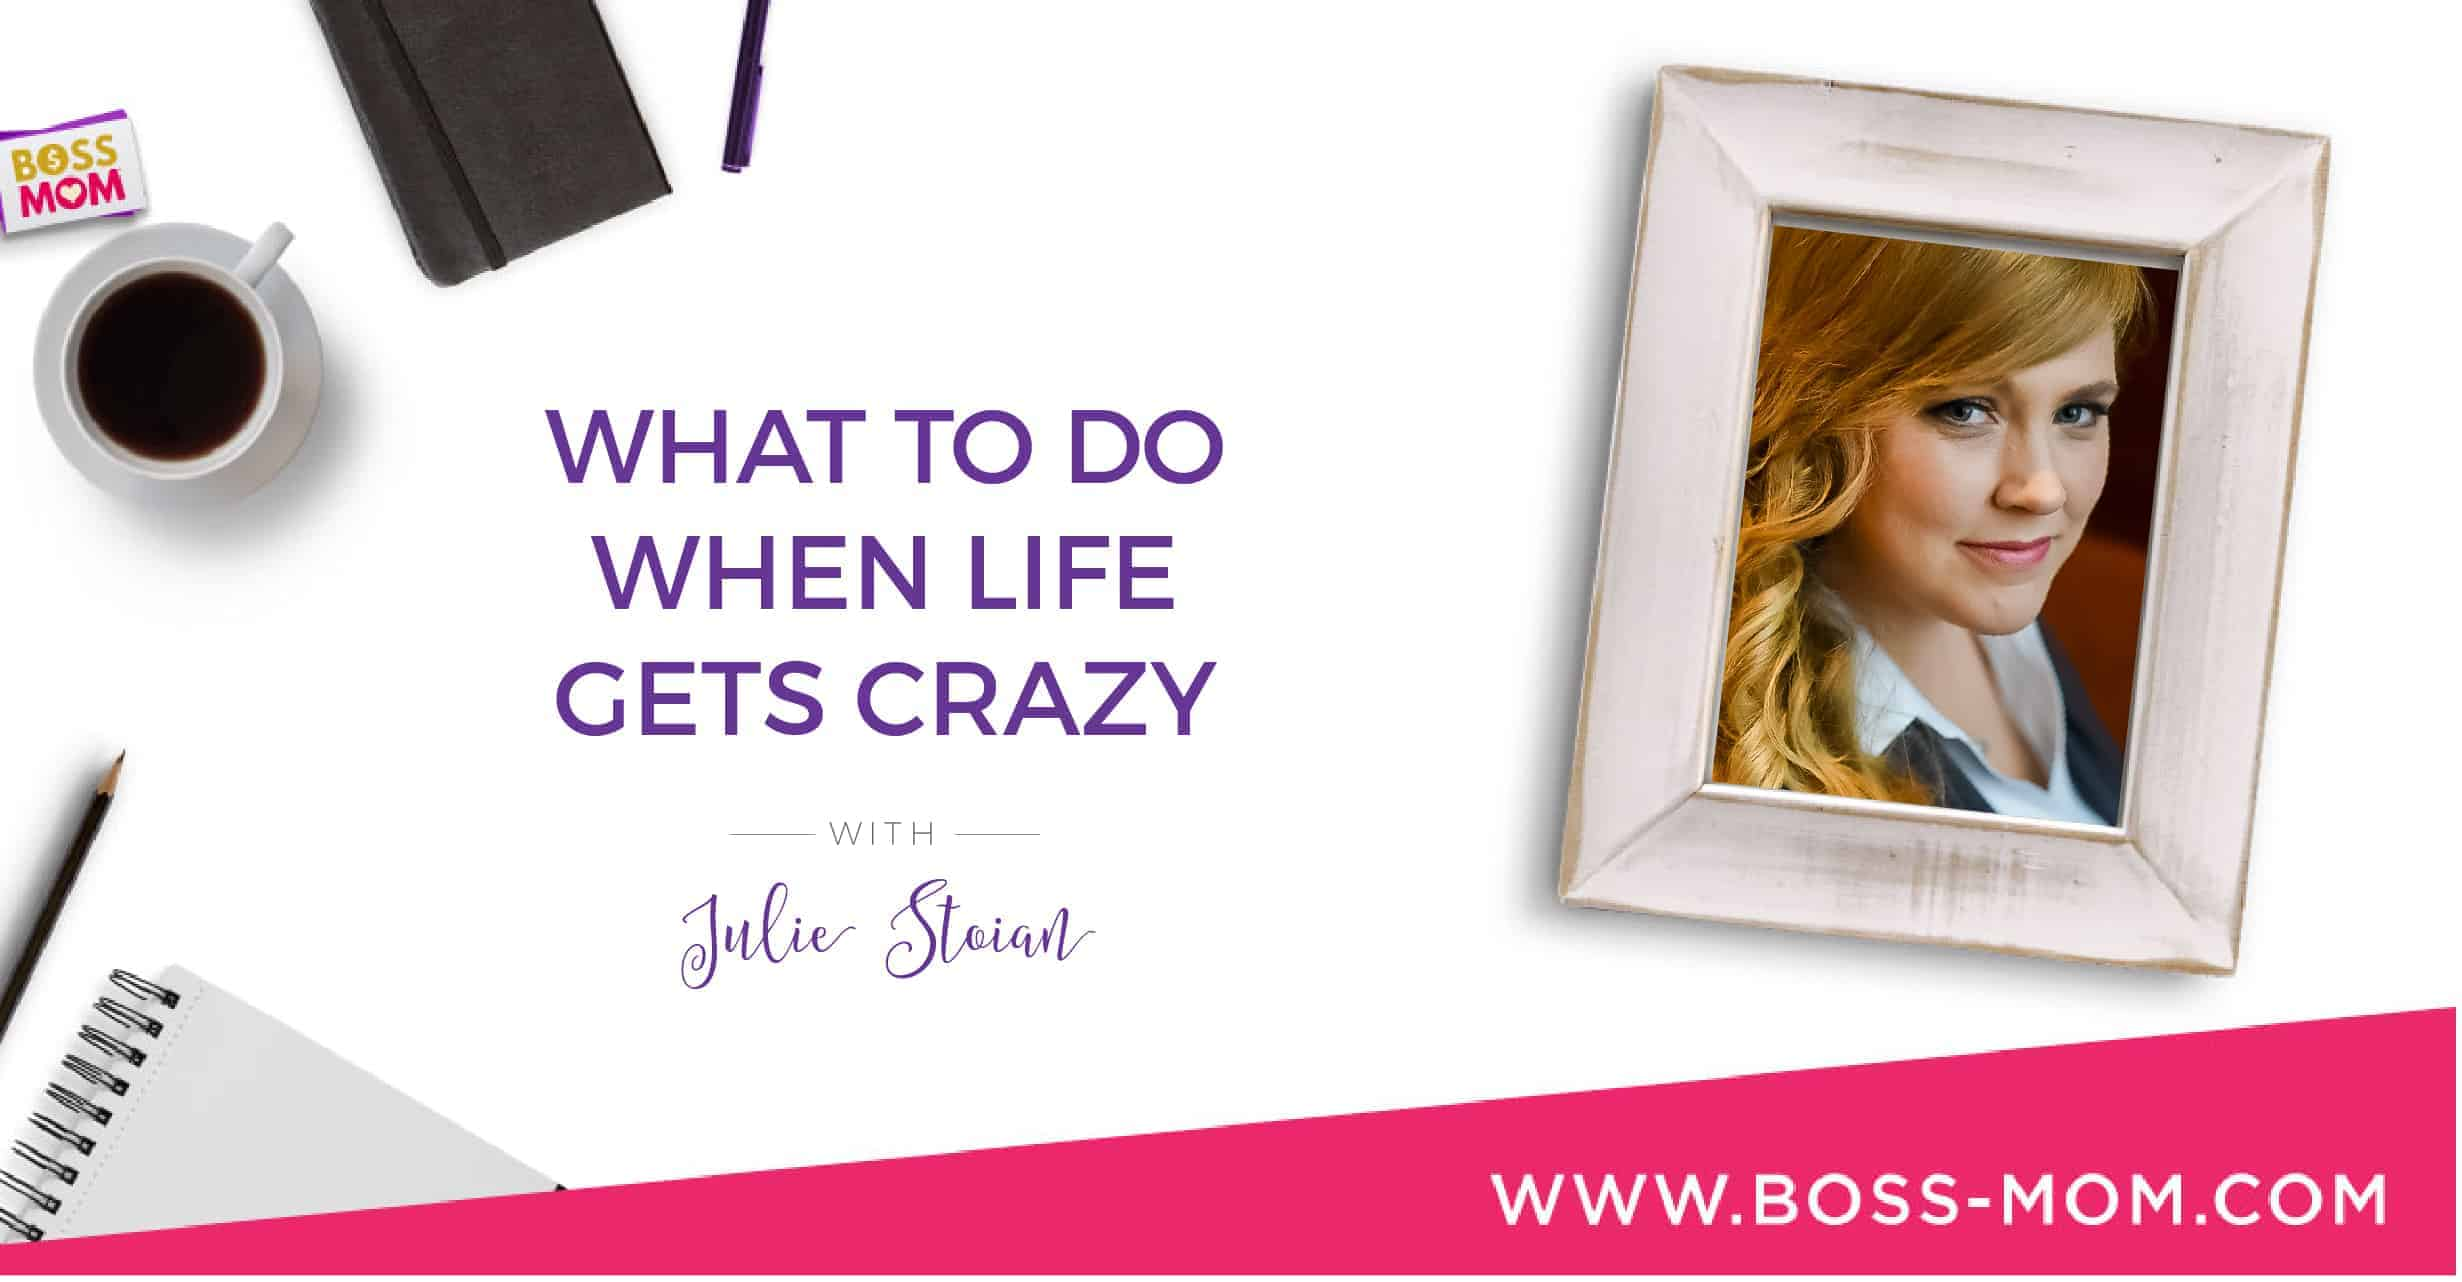 Episode 201: What to Do When Life Gets Crazy with Julie Stoian